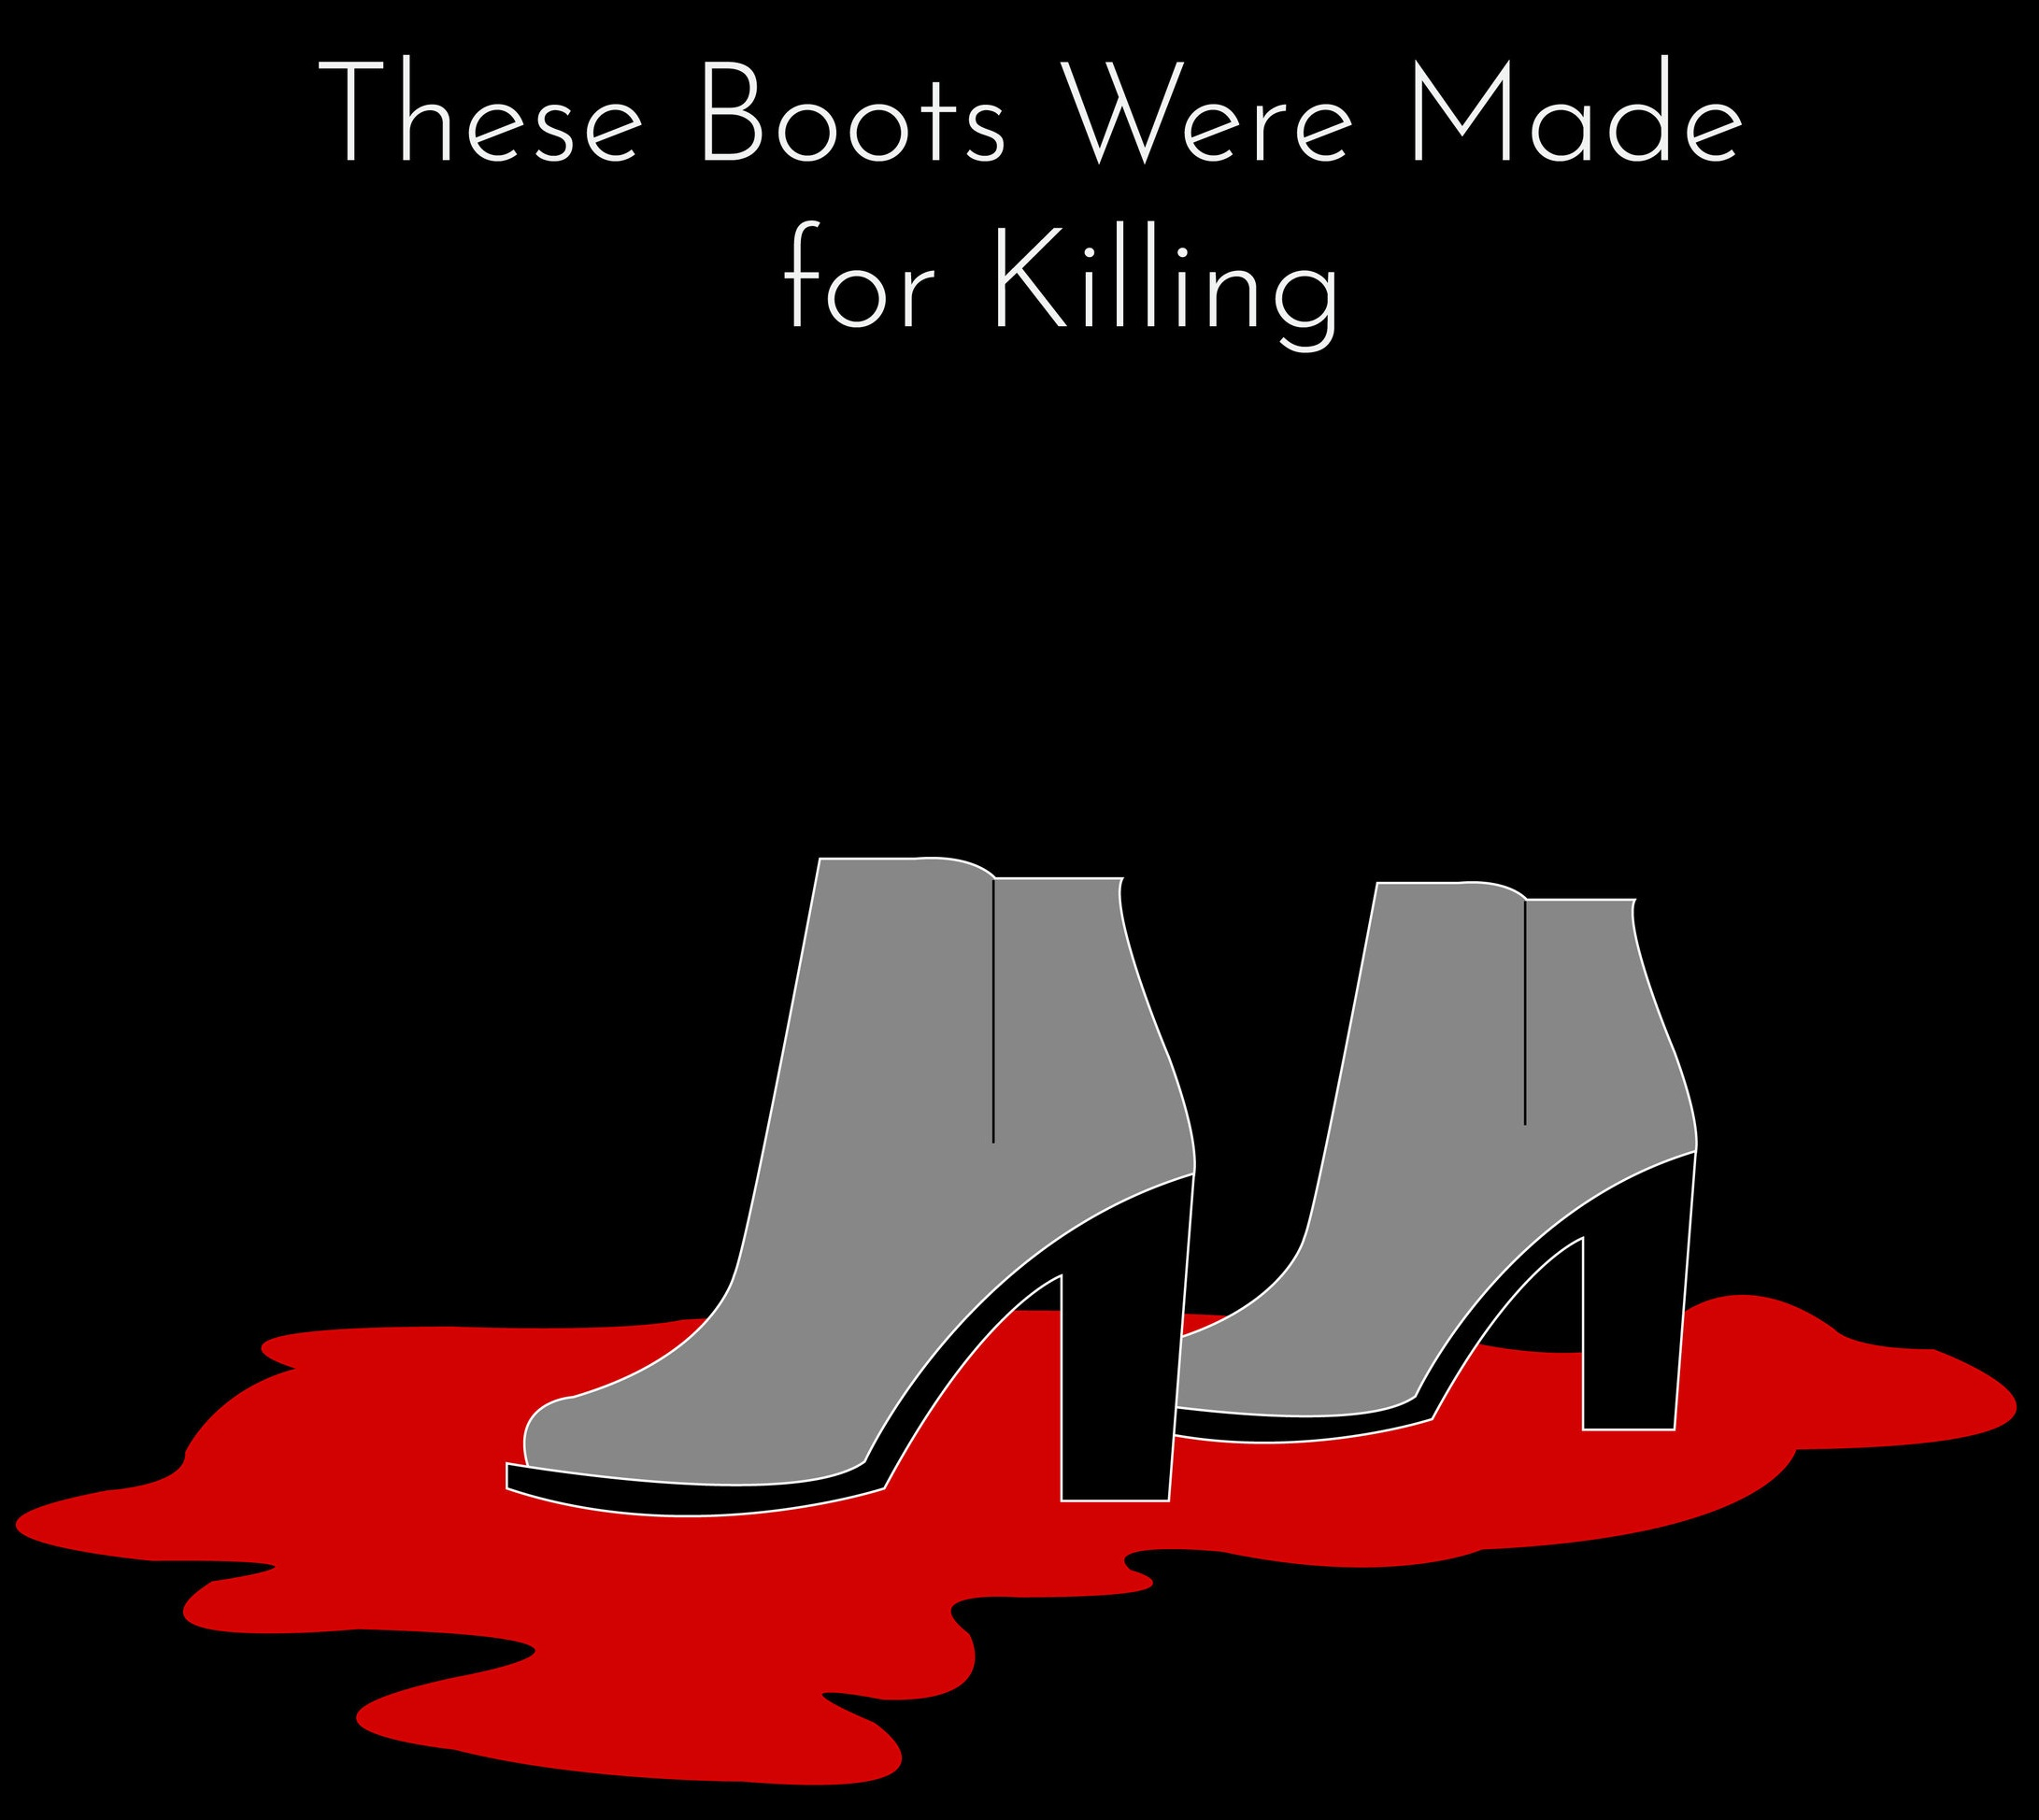 Episode+-+11+These+boots+were+made+for+killing.jpg